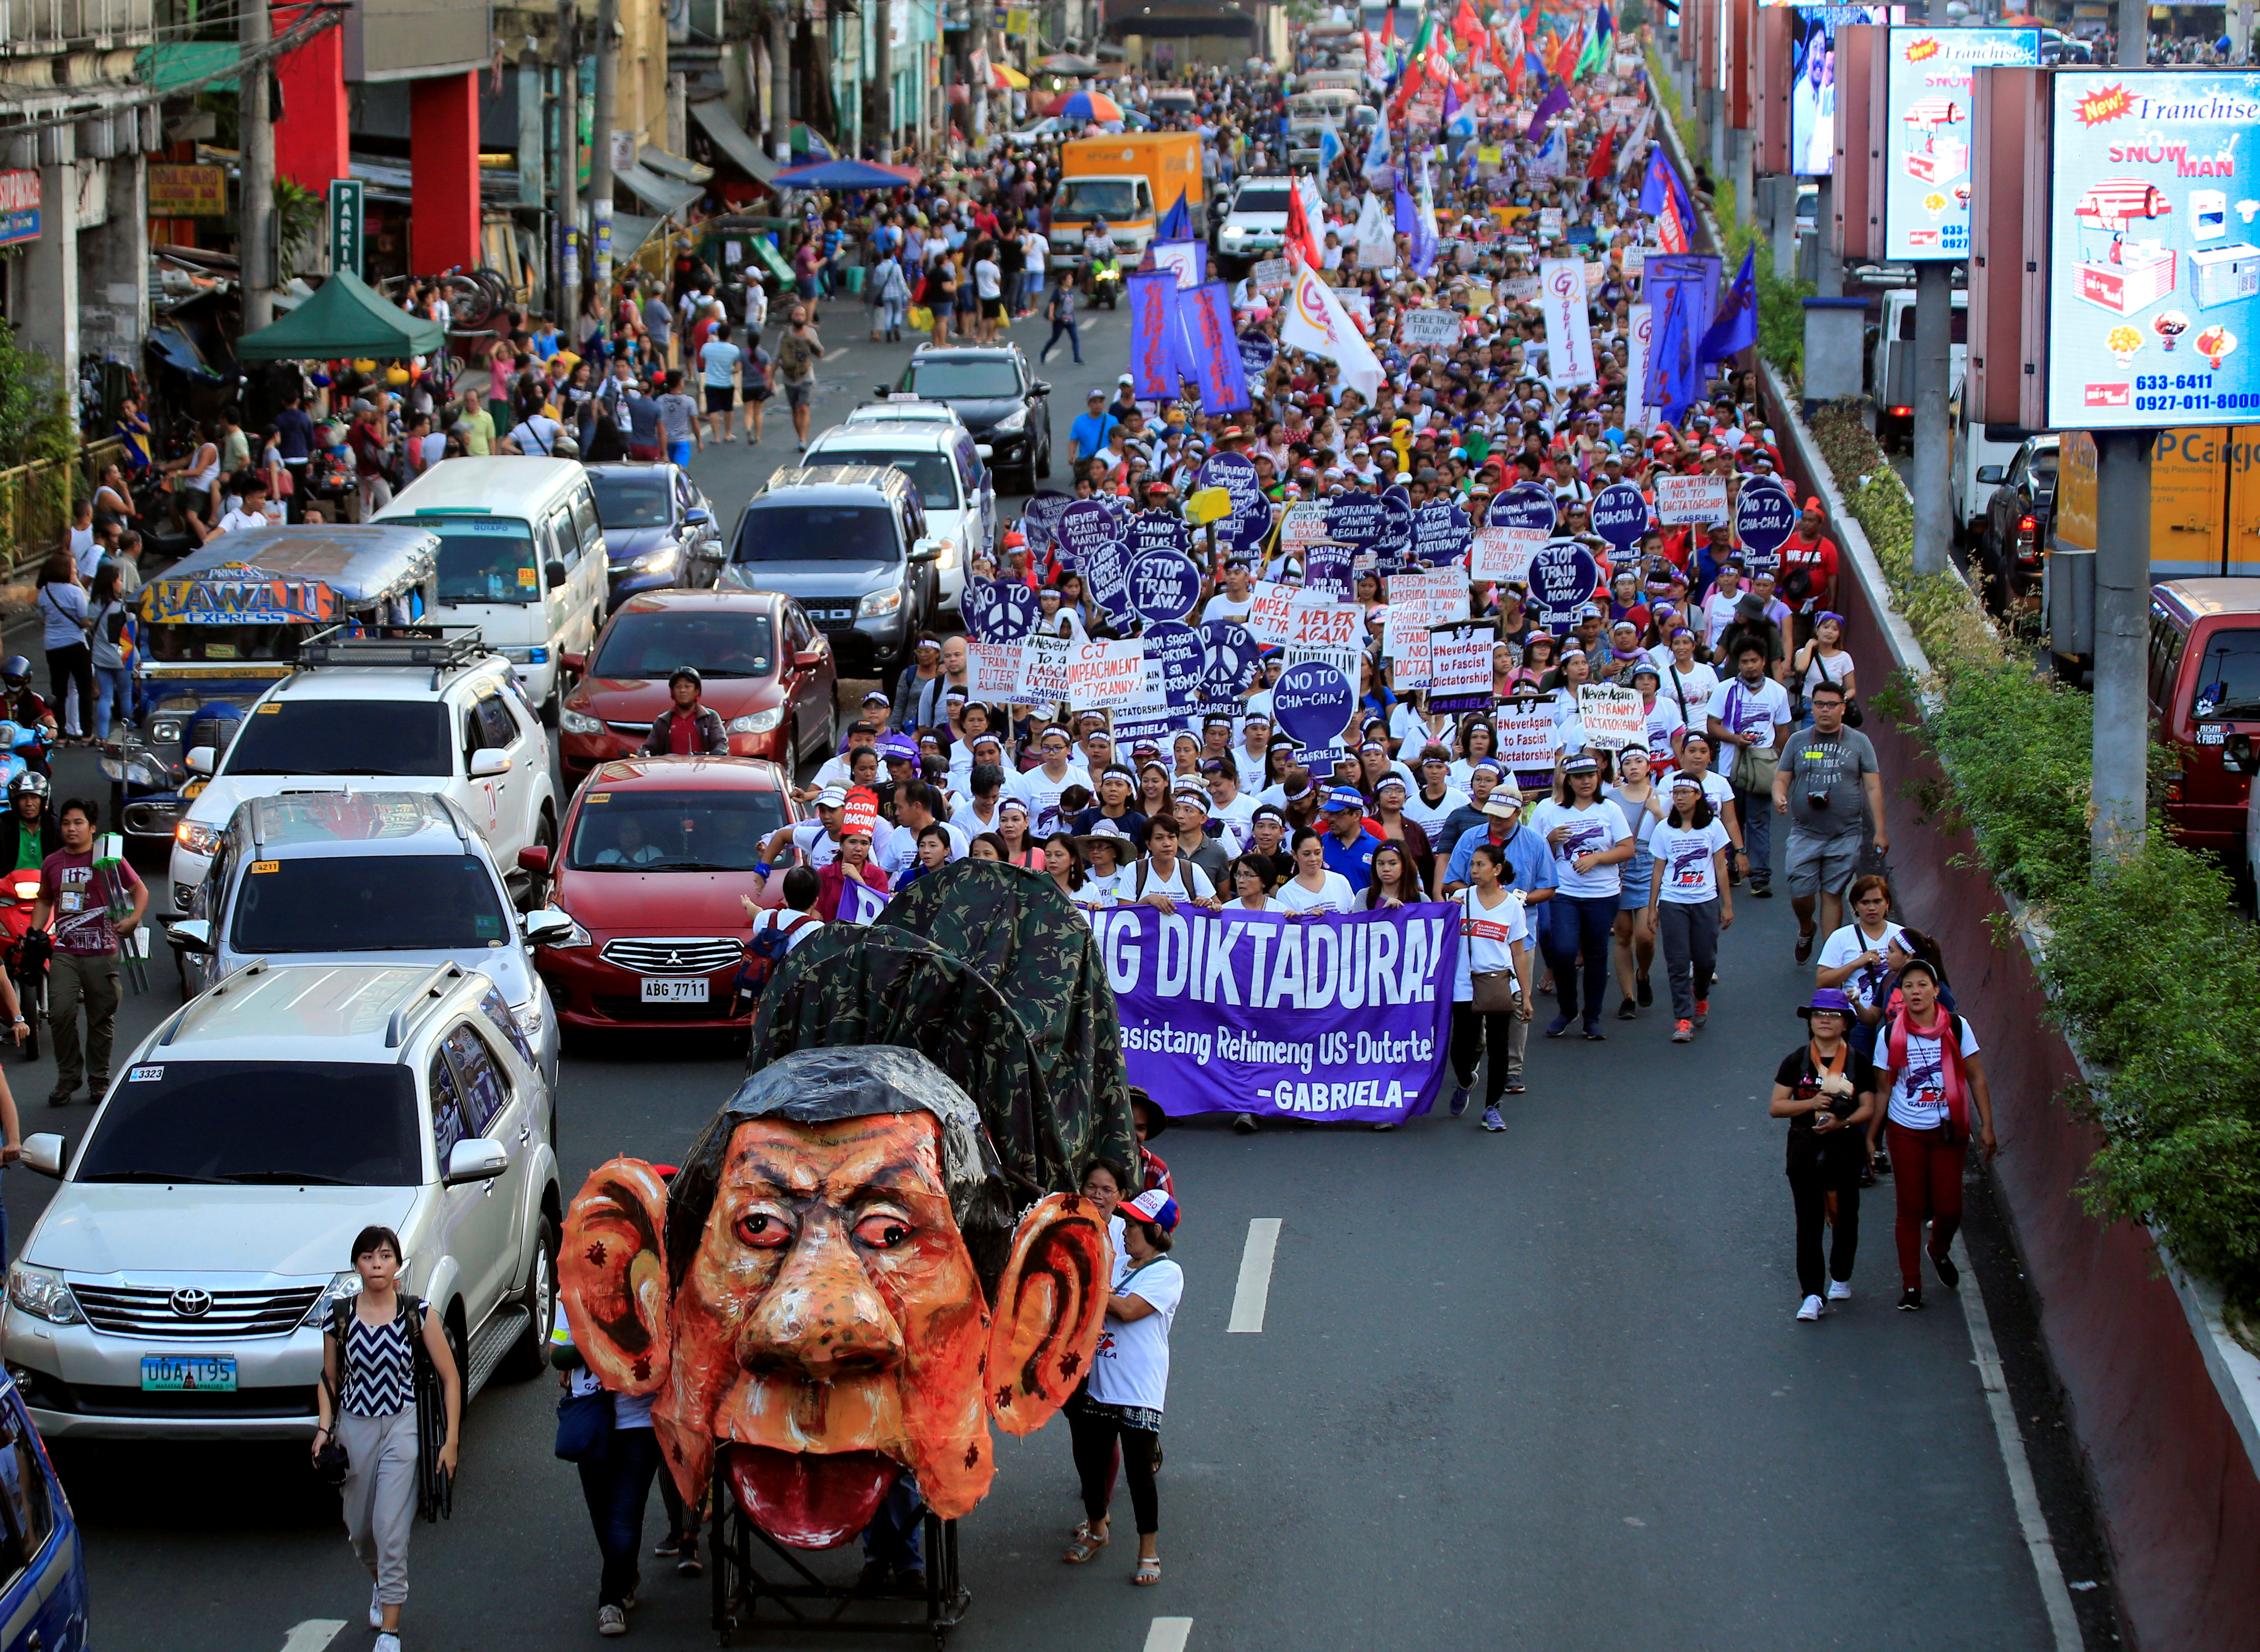 An effigy of Philippine President Rodrigo Duterte is seen while women's rights activists march along a busy street during a celebration of the International Women's Day in Quiapo city, Metro Manila, Philippines, March 8, 2018.